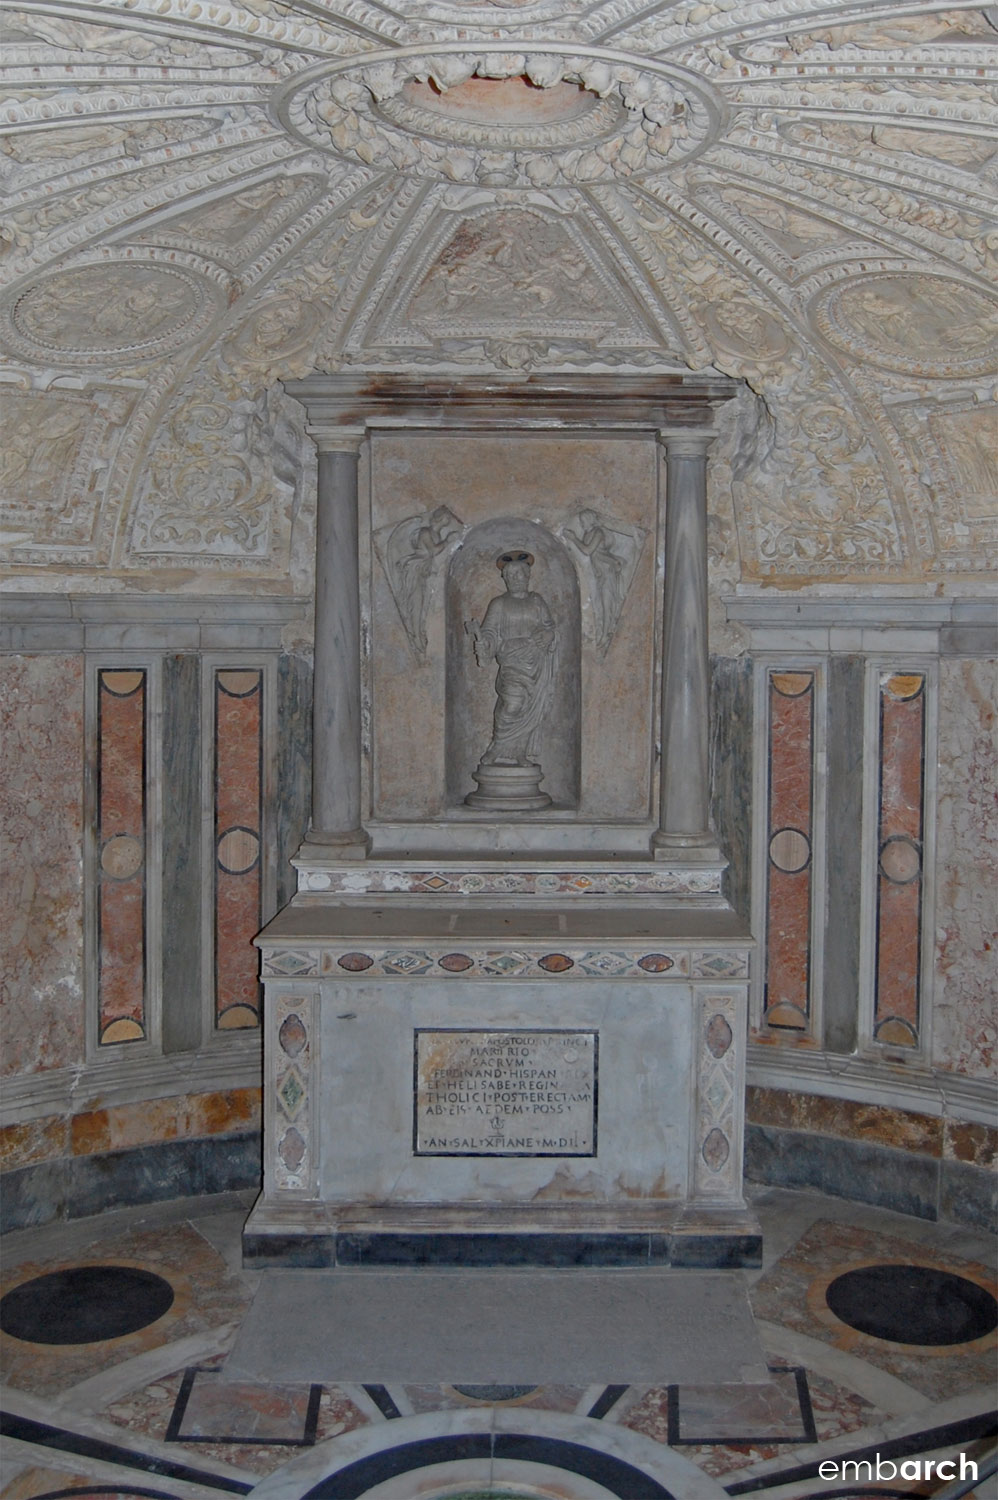 Tempietto - interior view of crypt